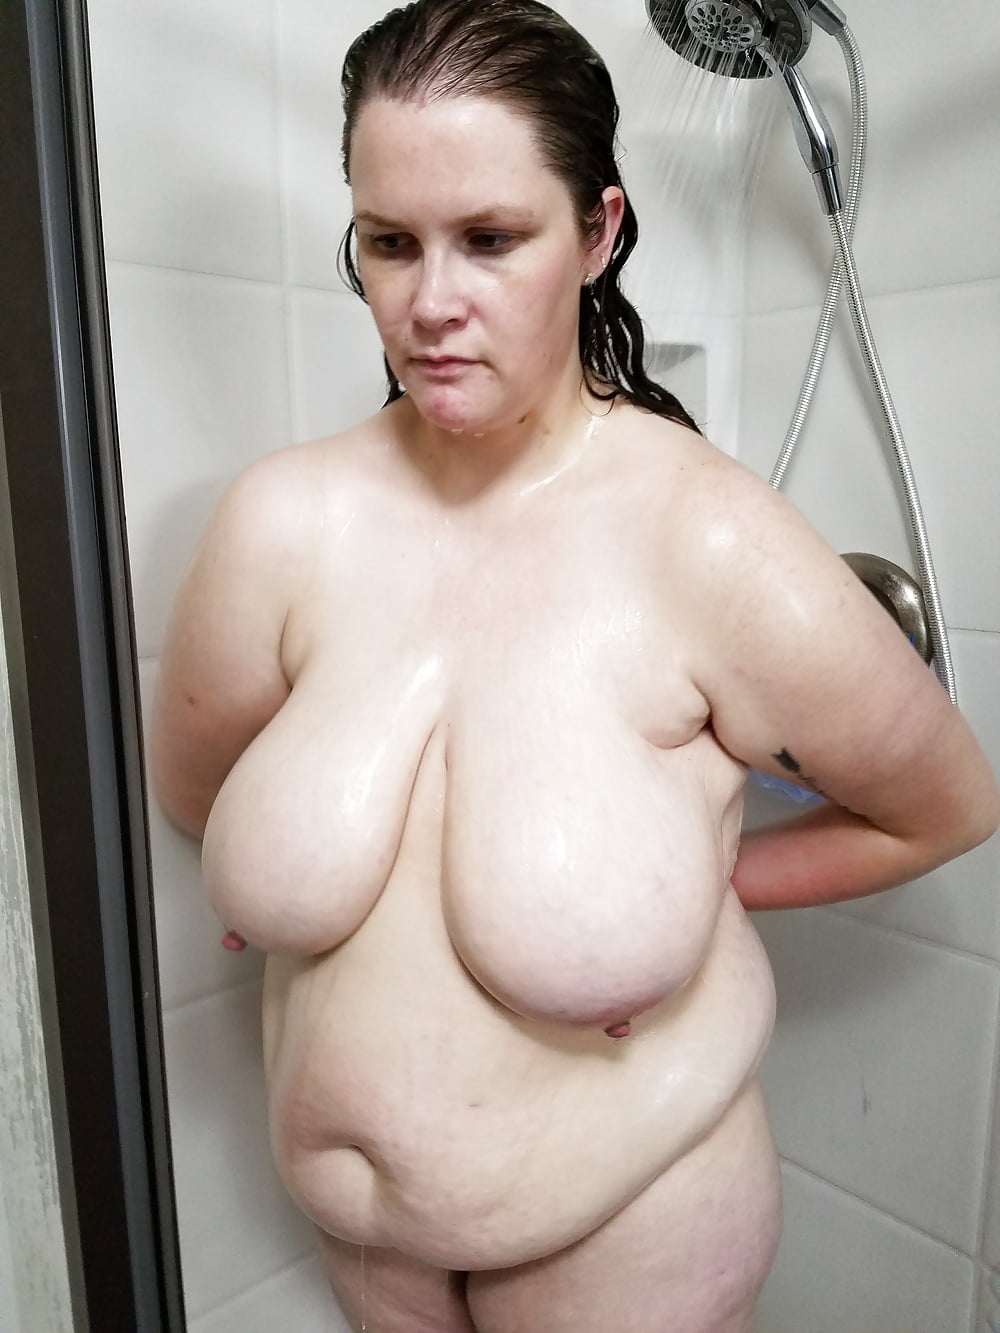 wifes-funny-ugly-naked-pics-in-the-shower-wet-live